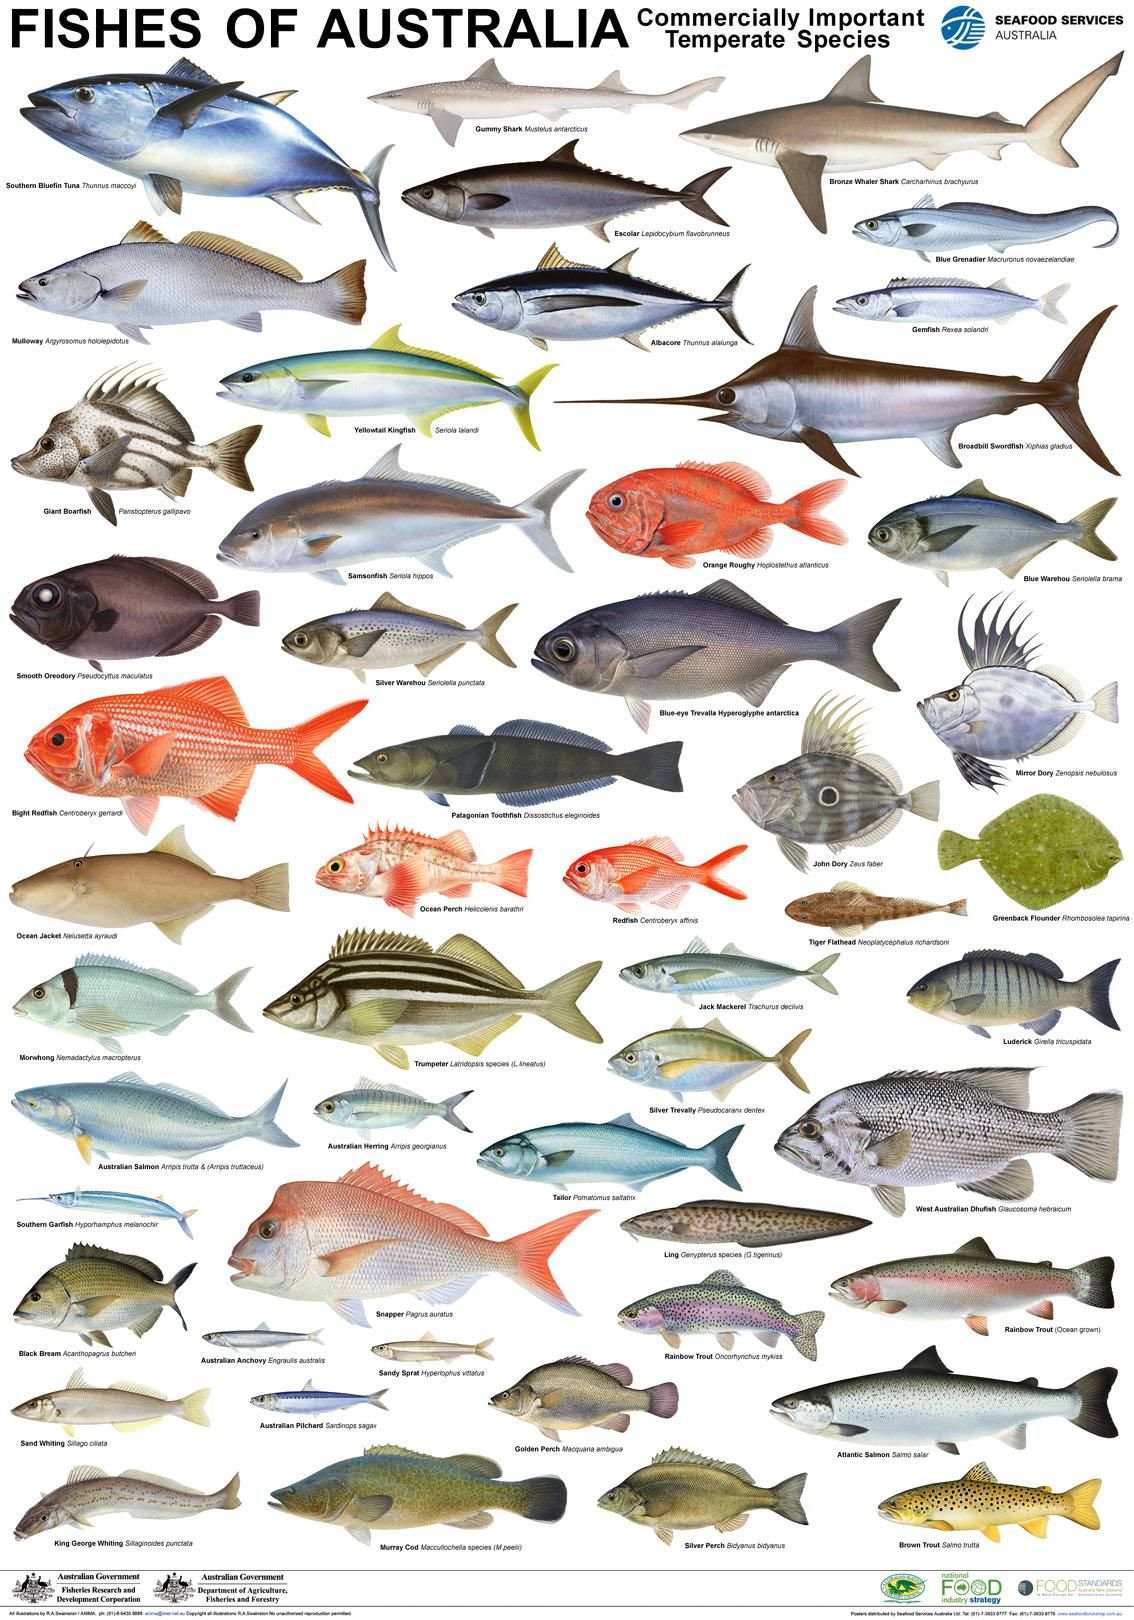 Pin by raul traslavi a veira on pesca pinterest fish seafood